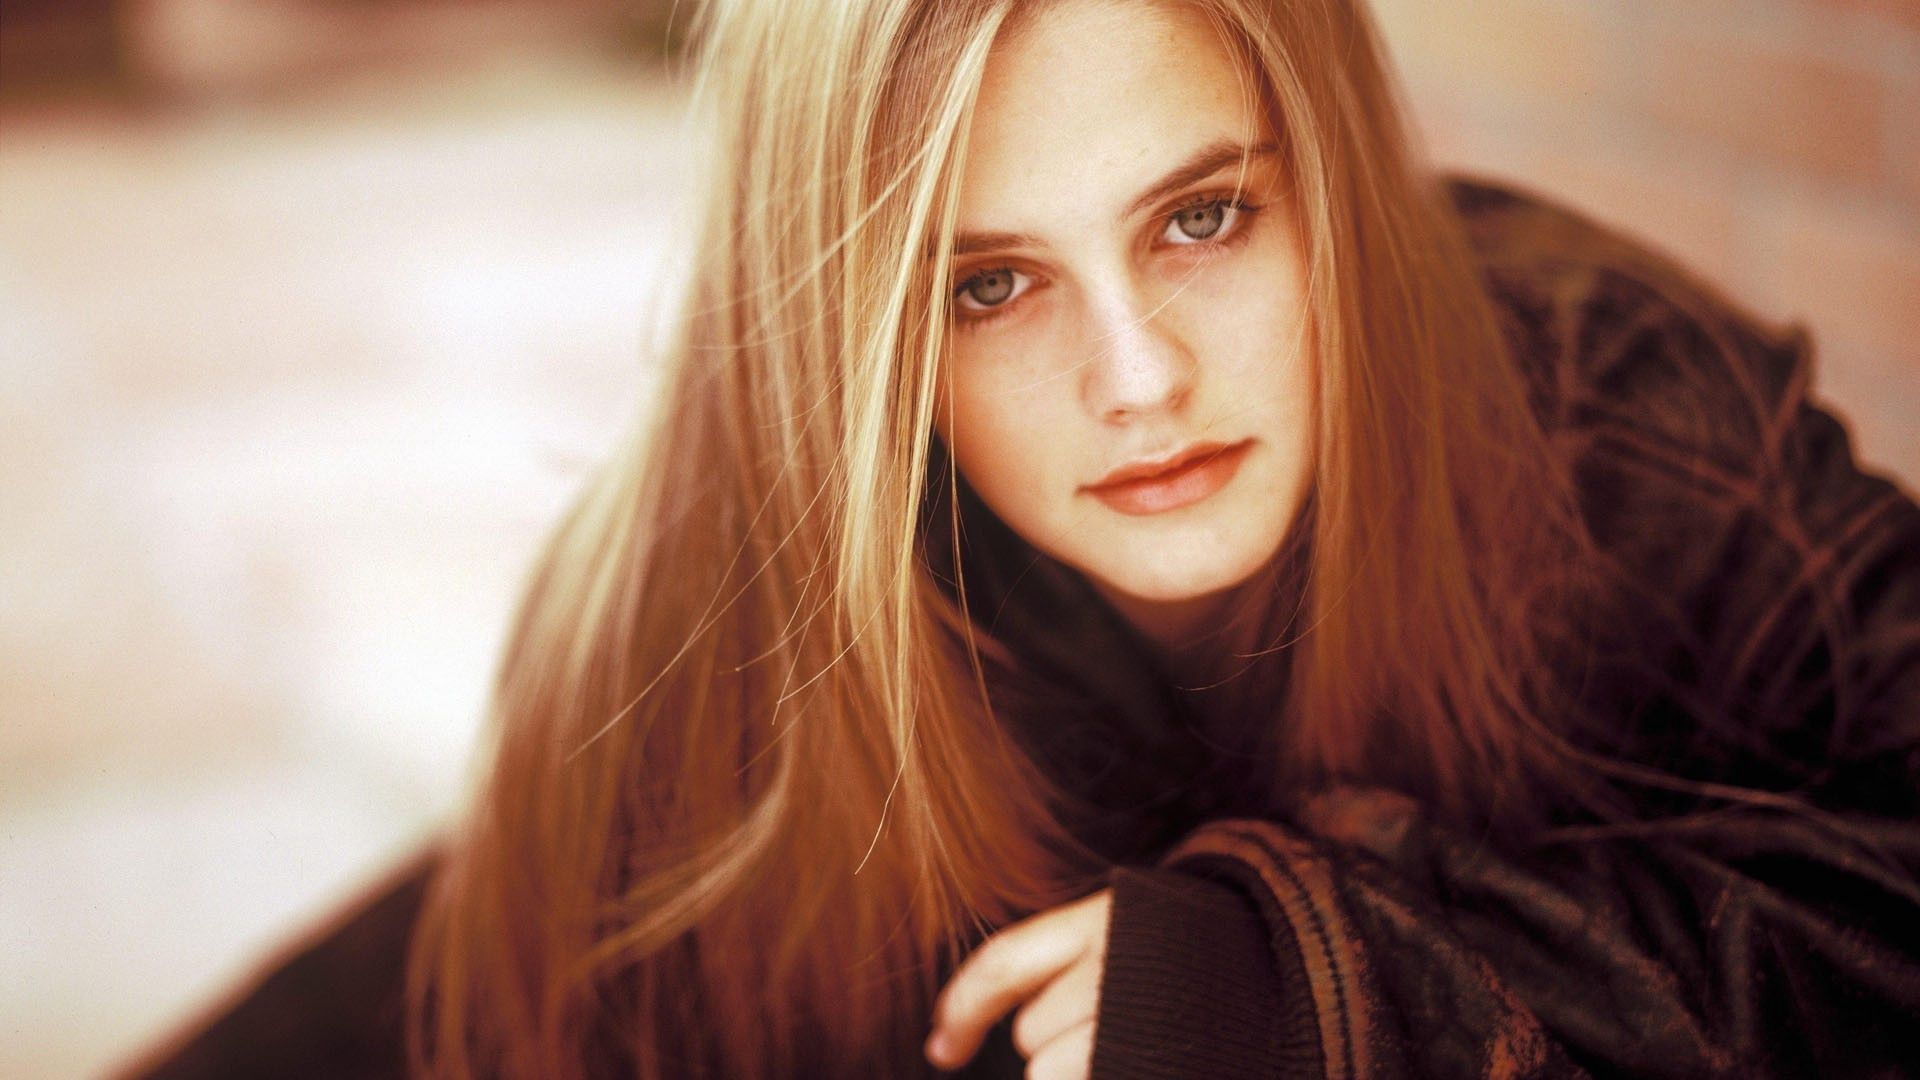 Download wallpapers 1920x1080 alicia silverstone, actress, blonde